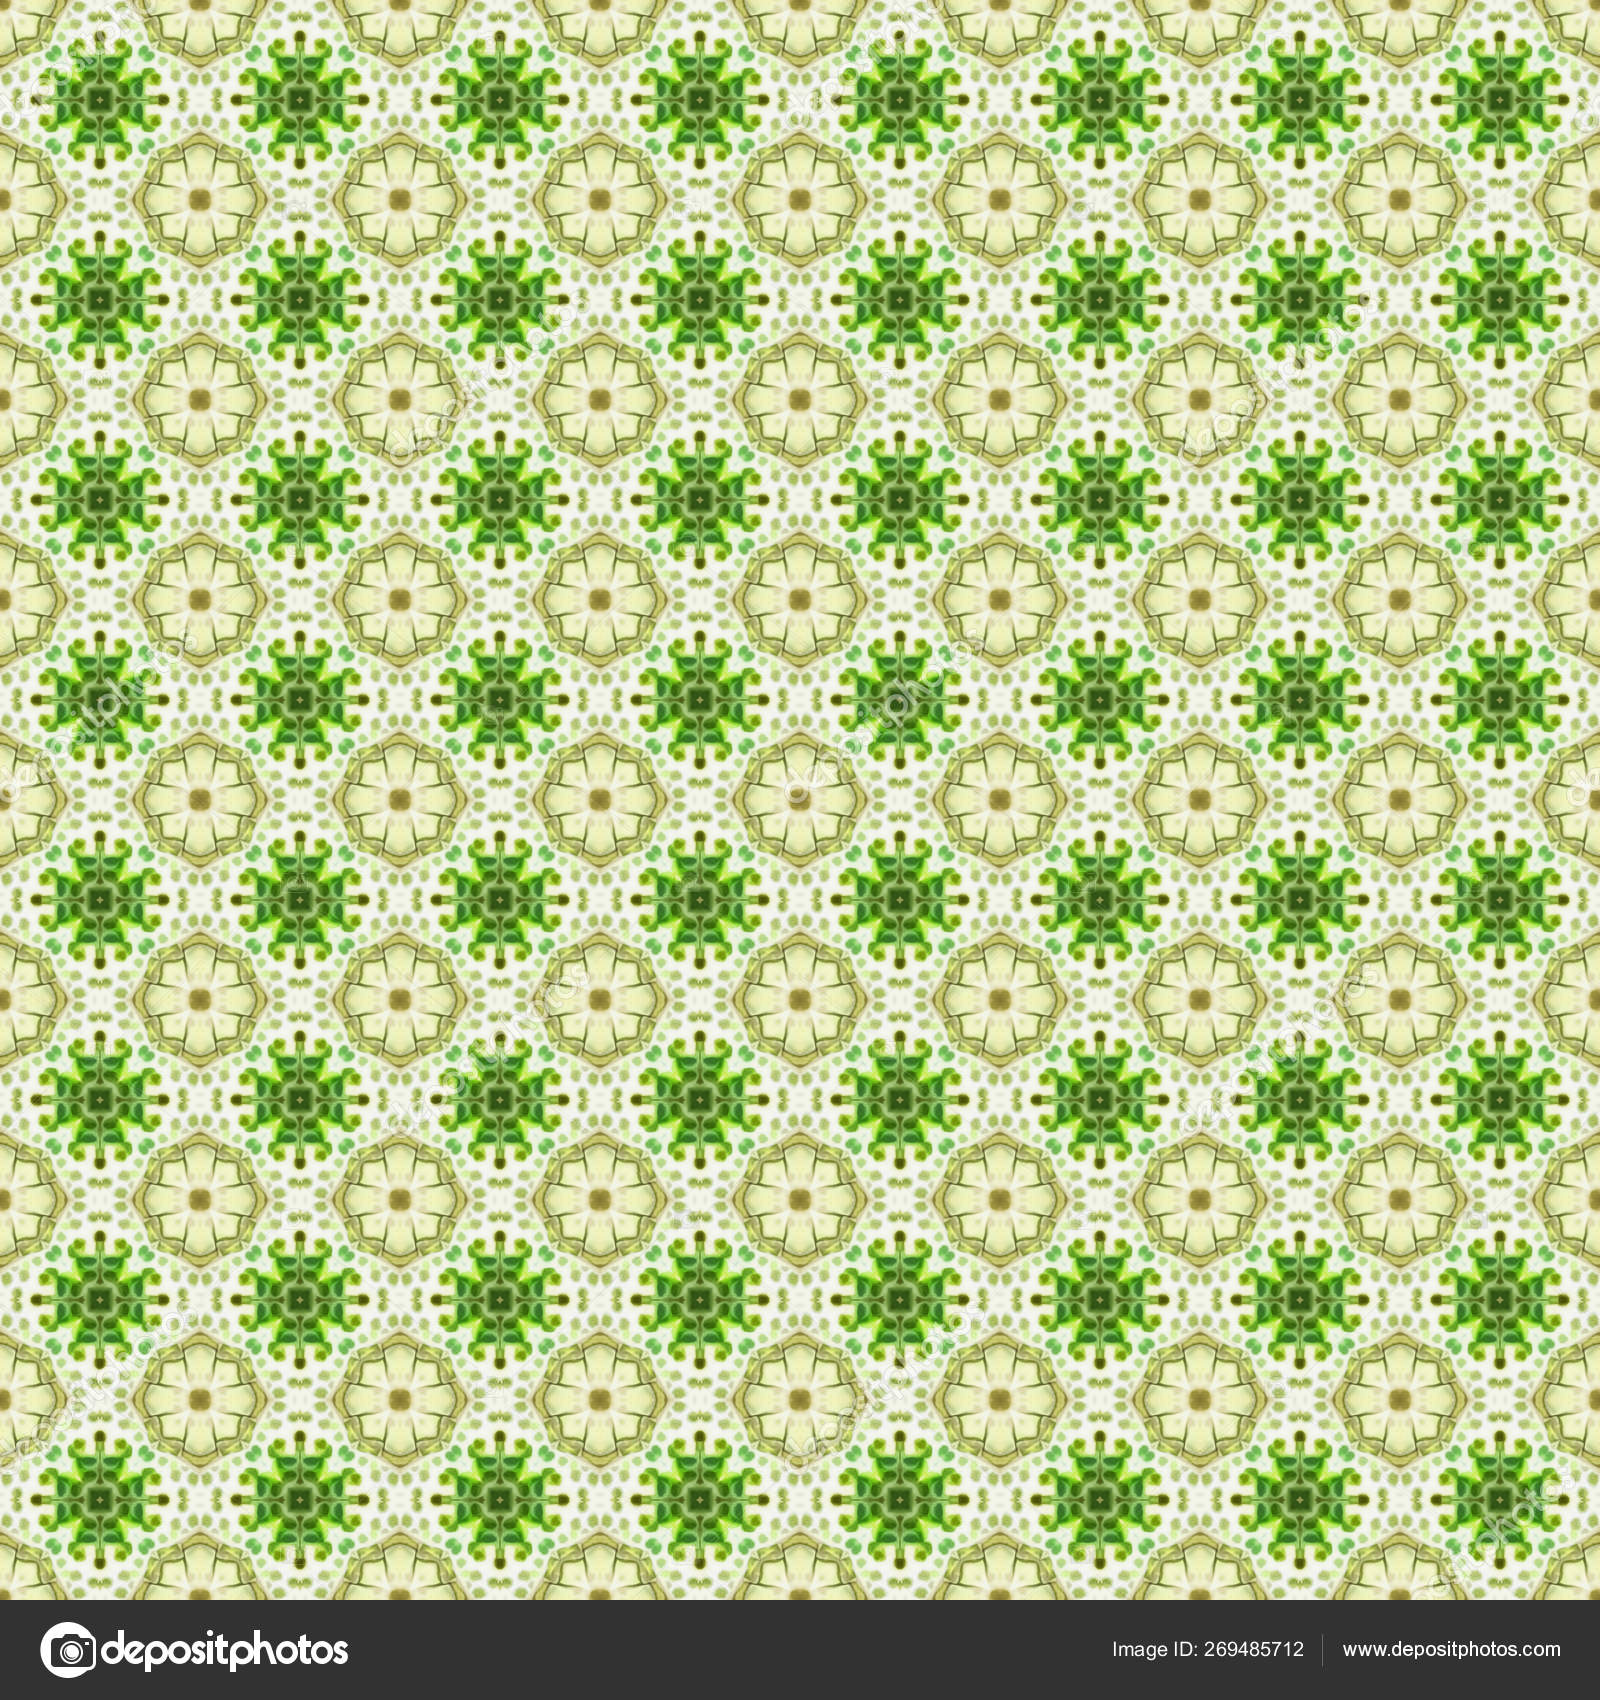 Journal or Scrapbook Papers Digital Papers LILY of THE VALLEY #1 12x12 Size Black Green Floral Paper Digital Printable Papers